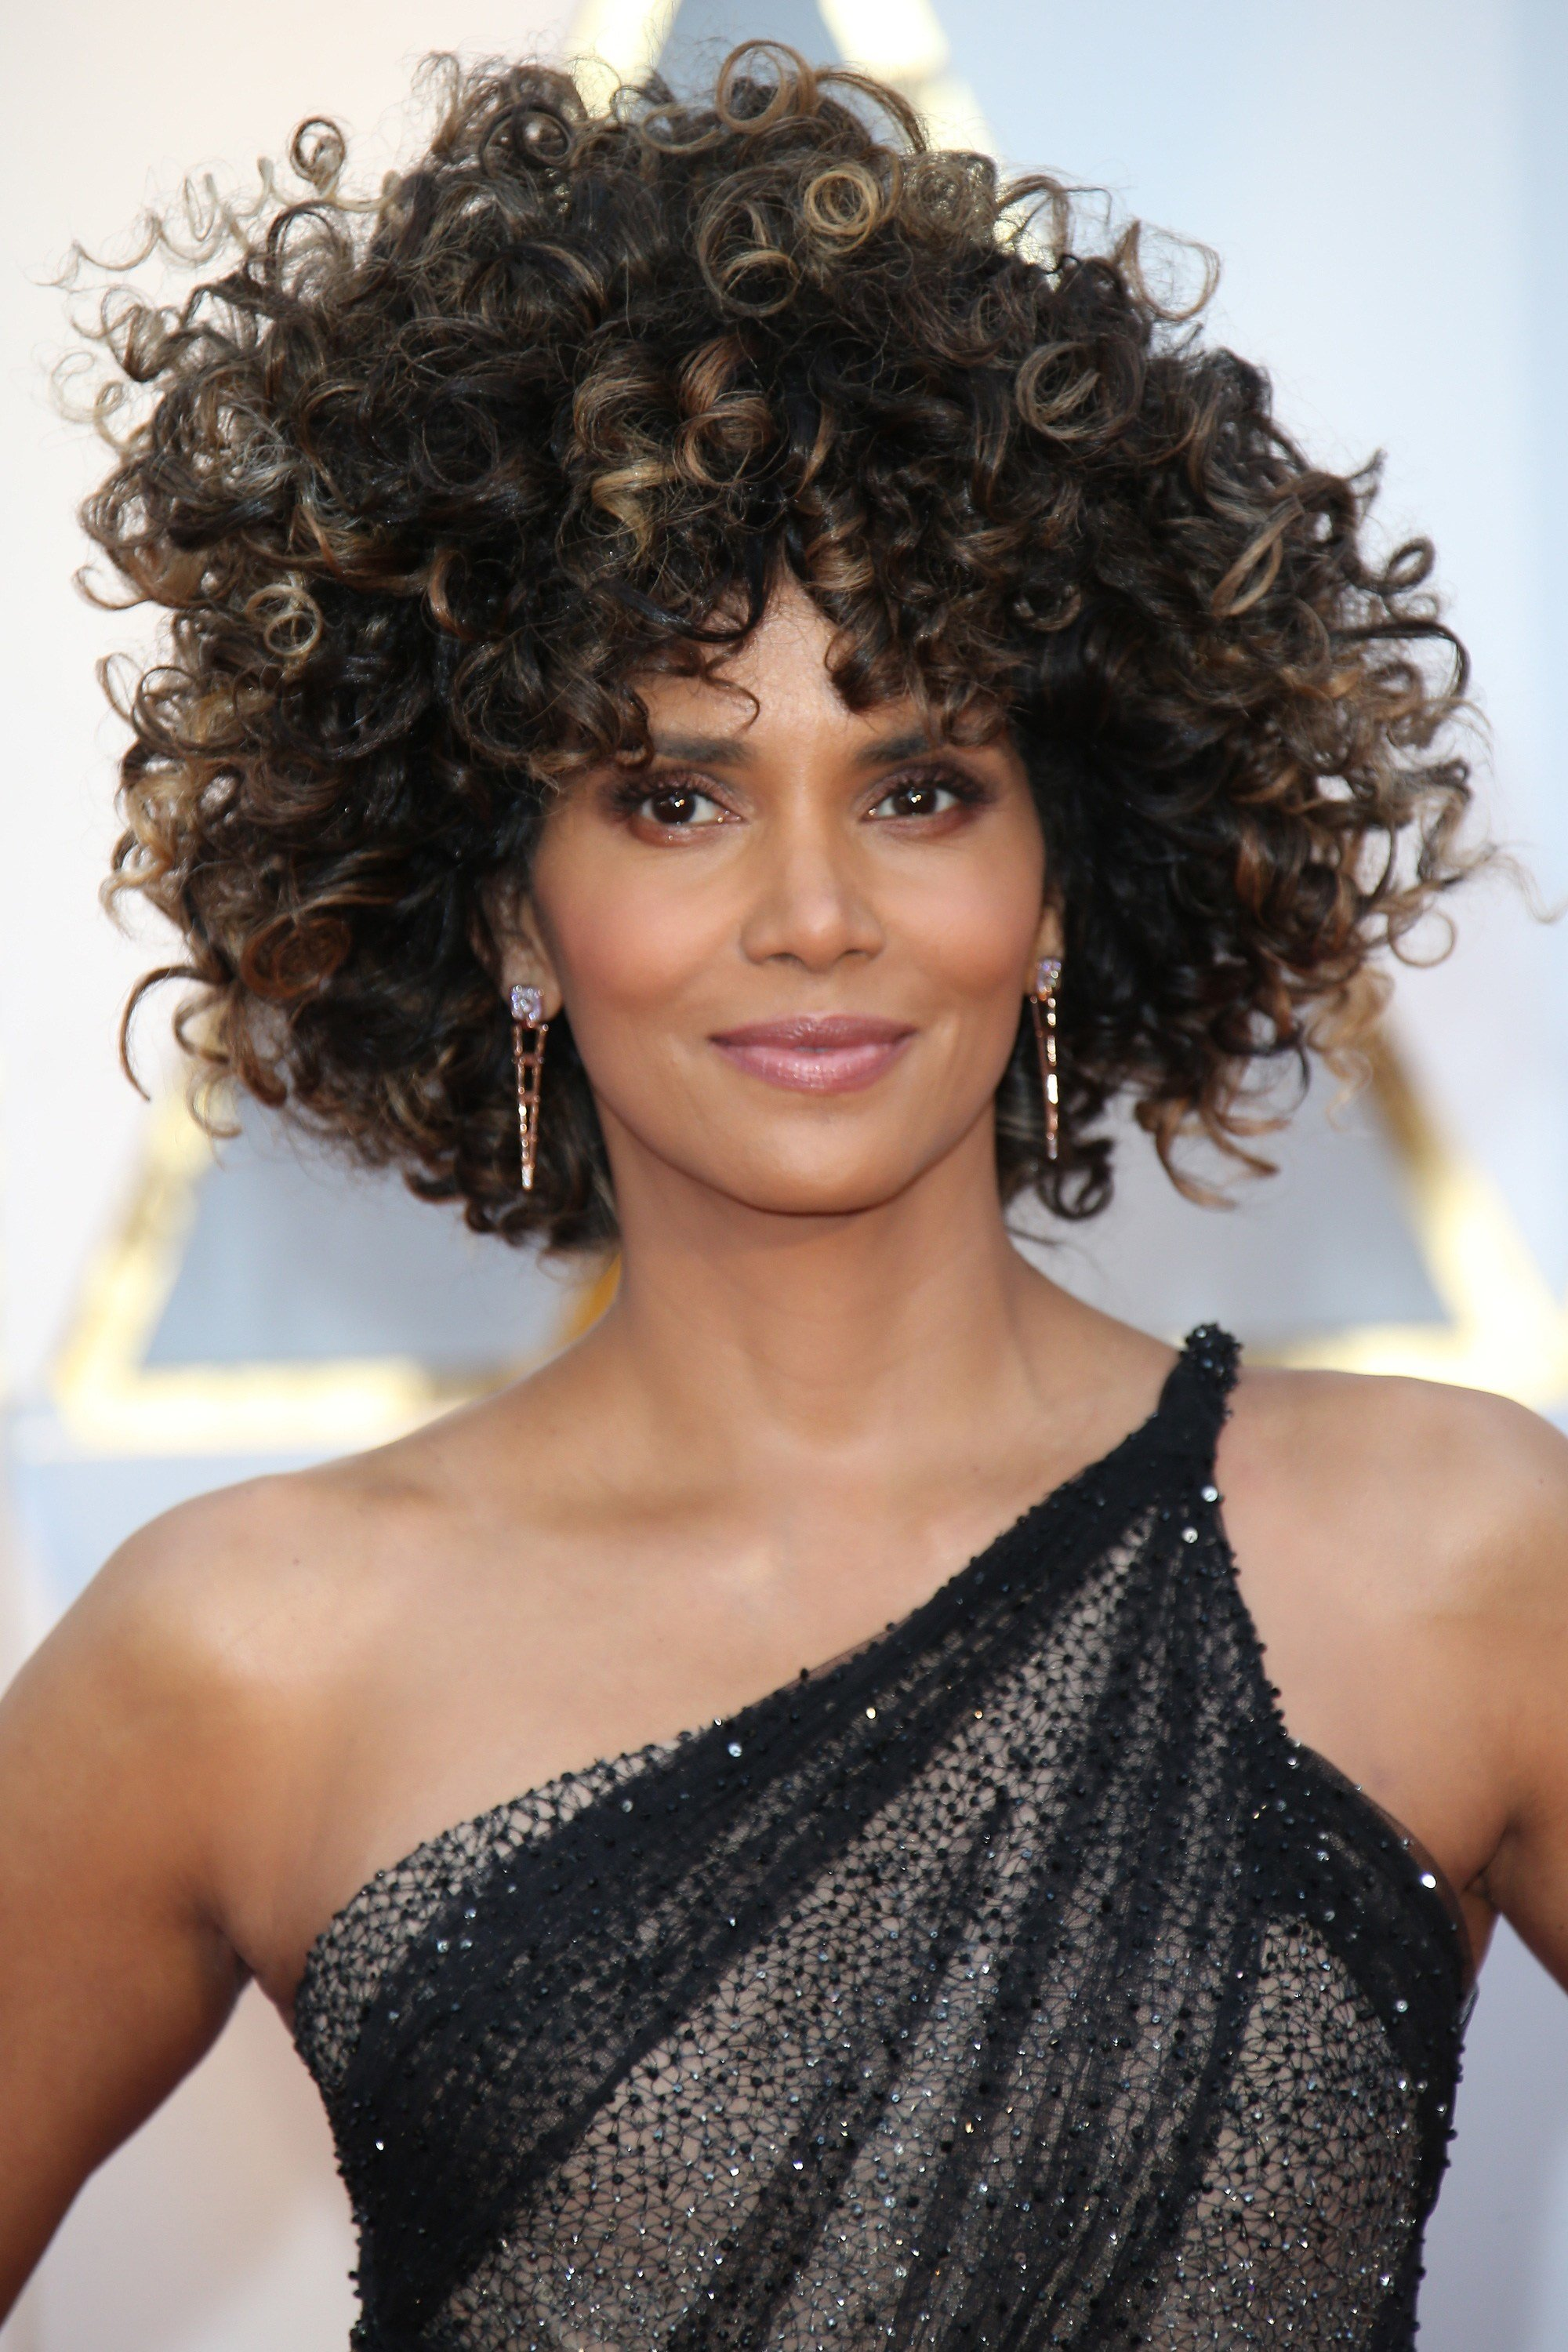 The Best 35 Easy Curly Hairstyles Short Medium And Long Pictures